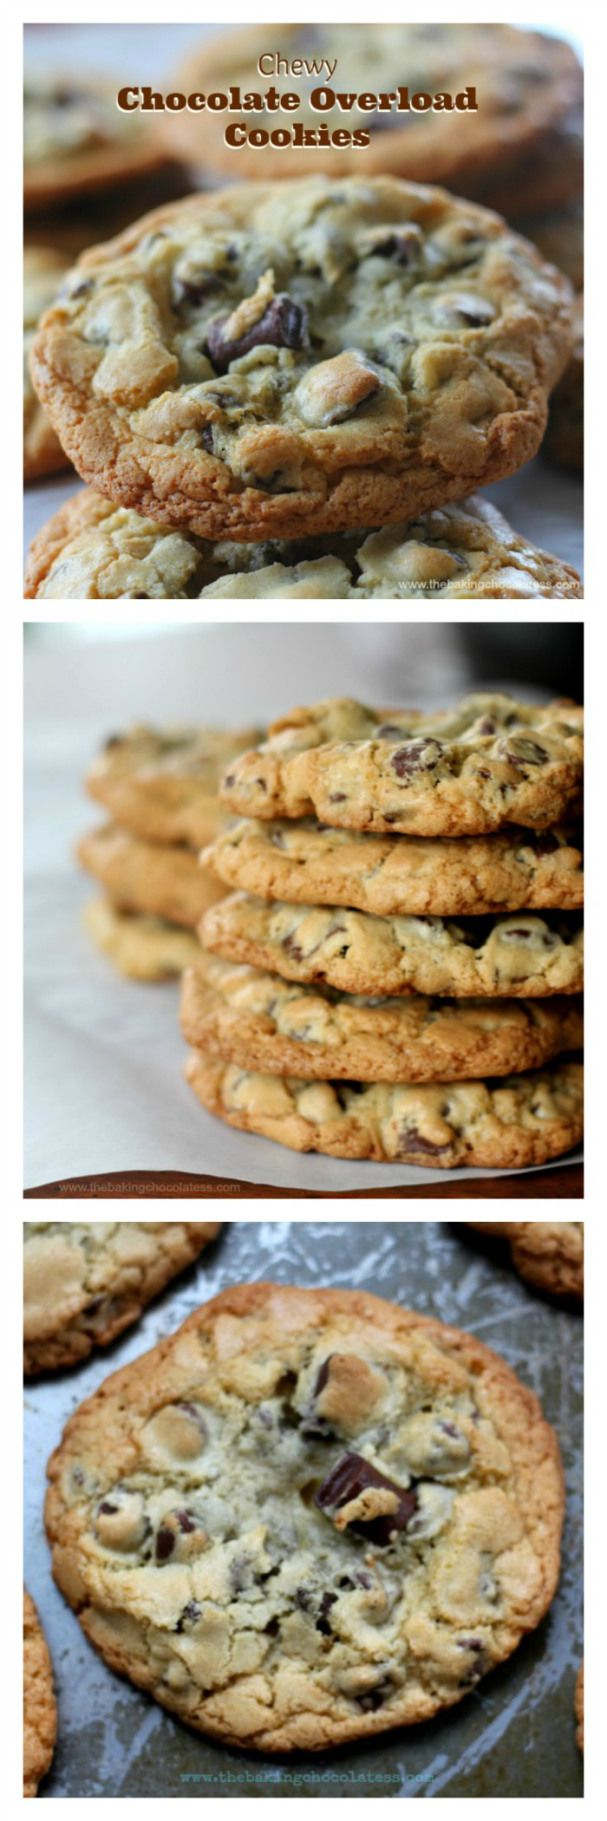 ... Cookie Ideas on Pinterest | Cookies, Chocolate chip cookies and Chip